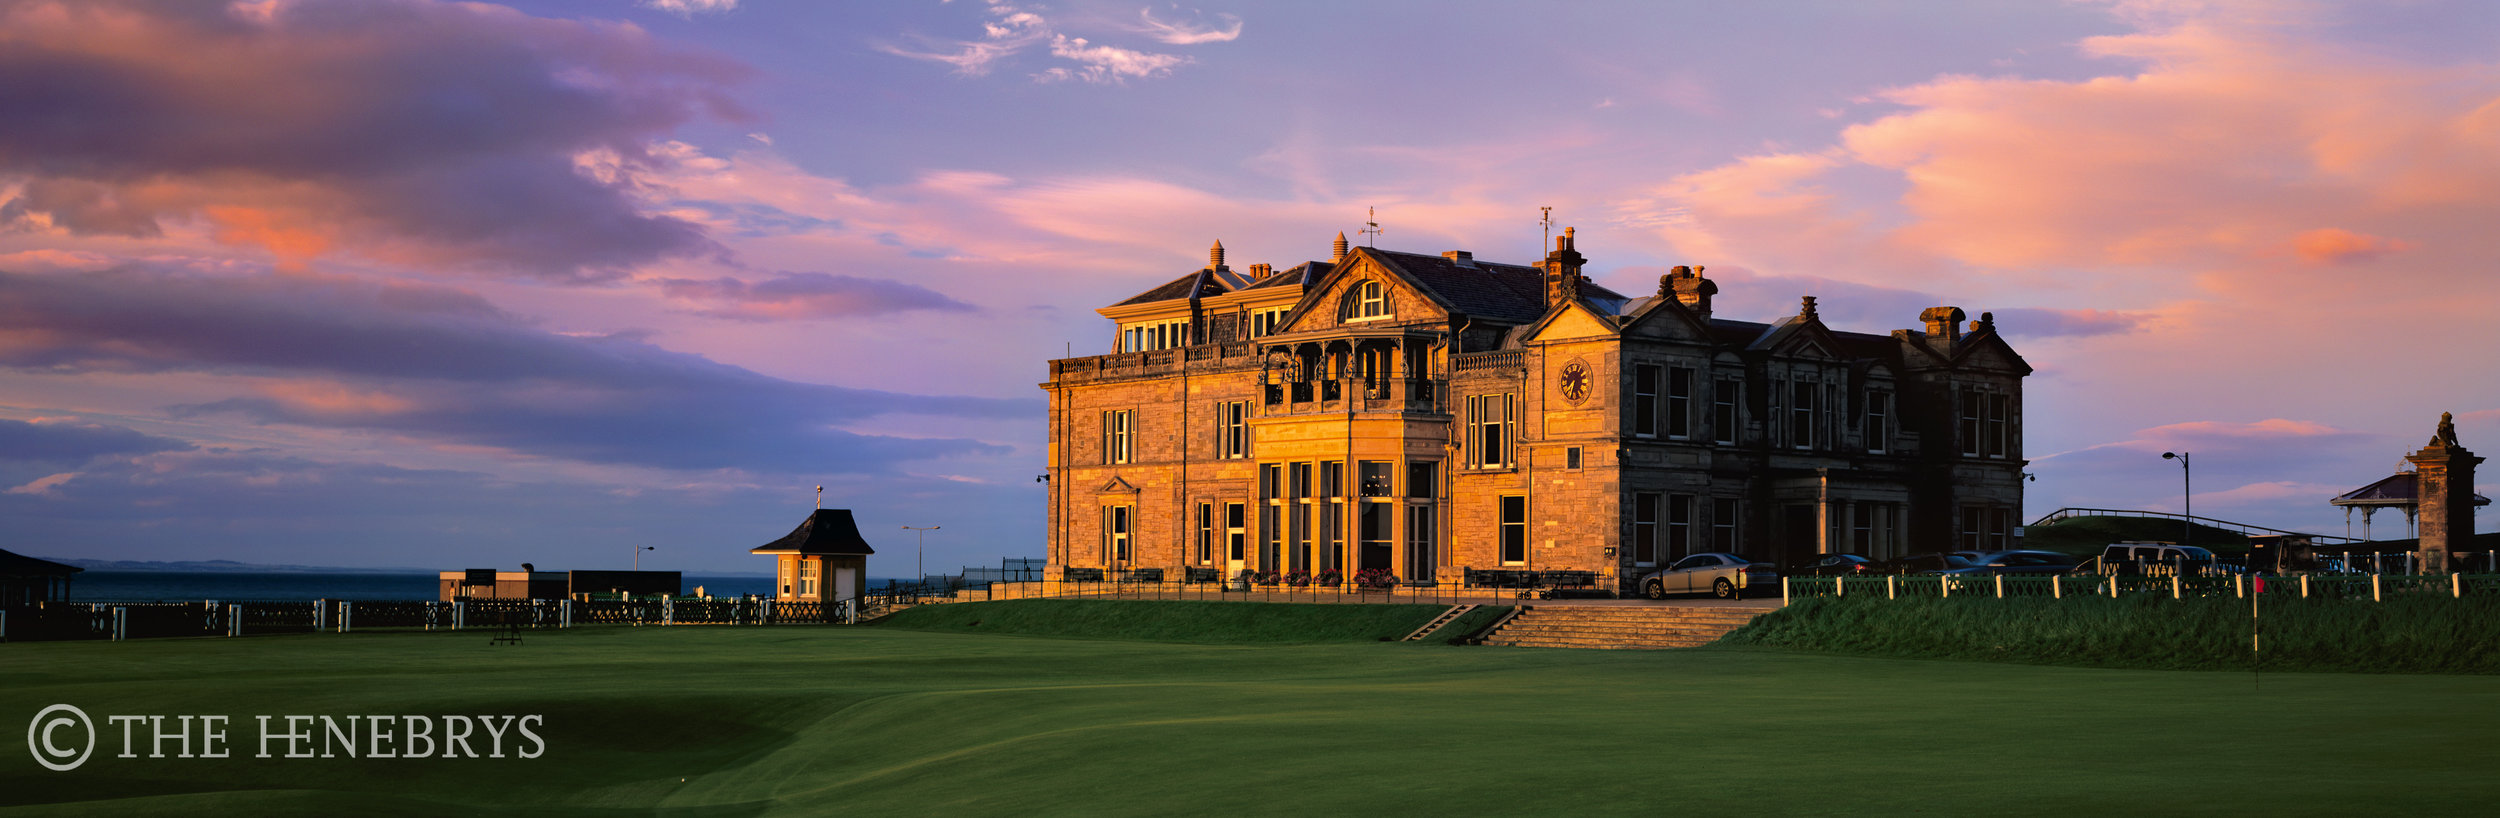 Royal and Ancient Golf Club, St. Andrews, Scotland